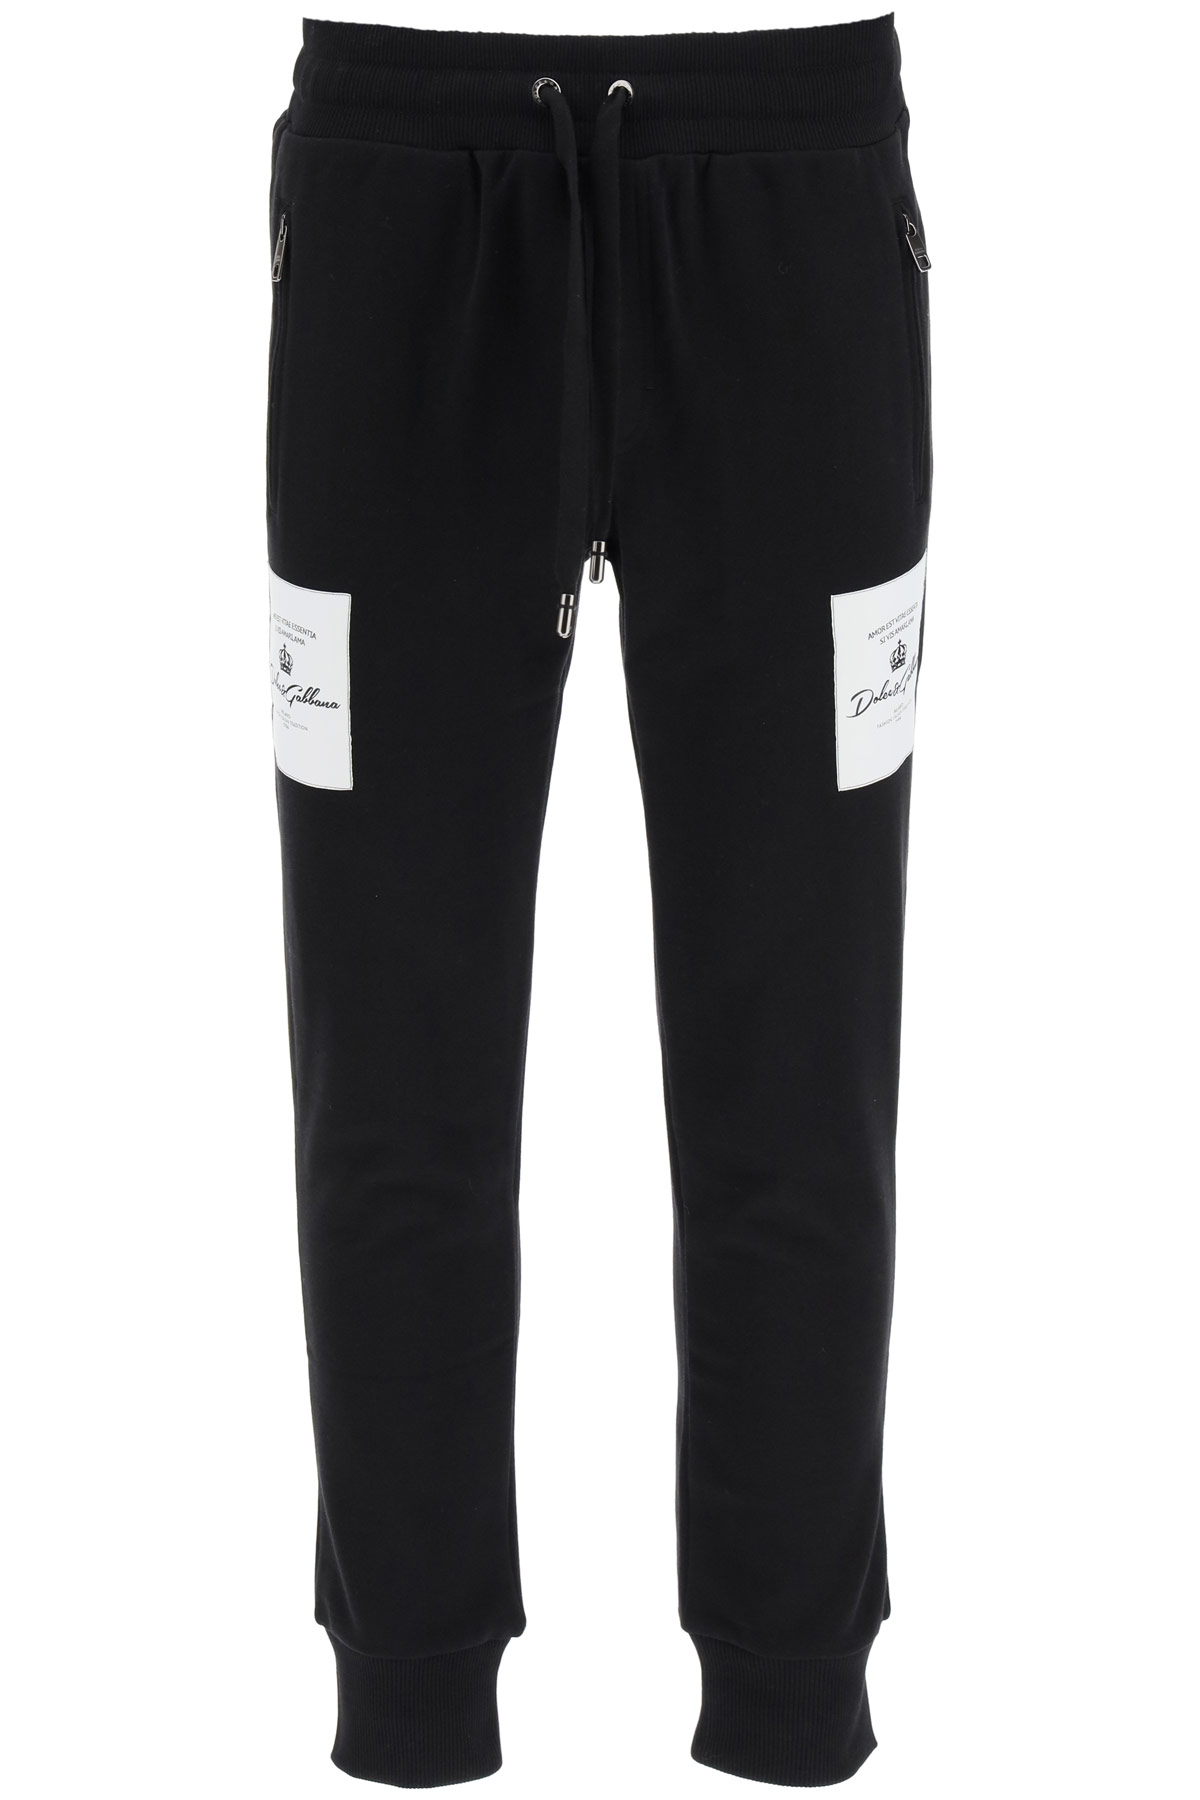 Dolce & Gabbana Sweatpants Logo Patches In Black